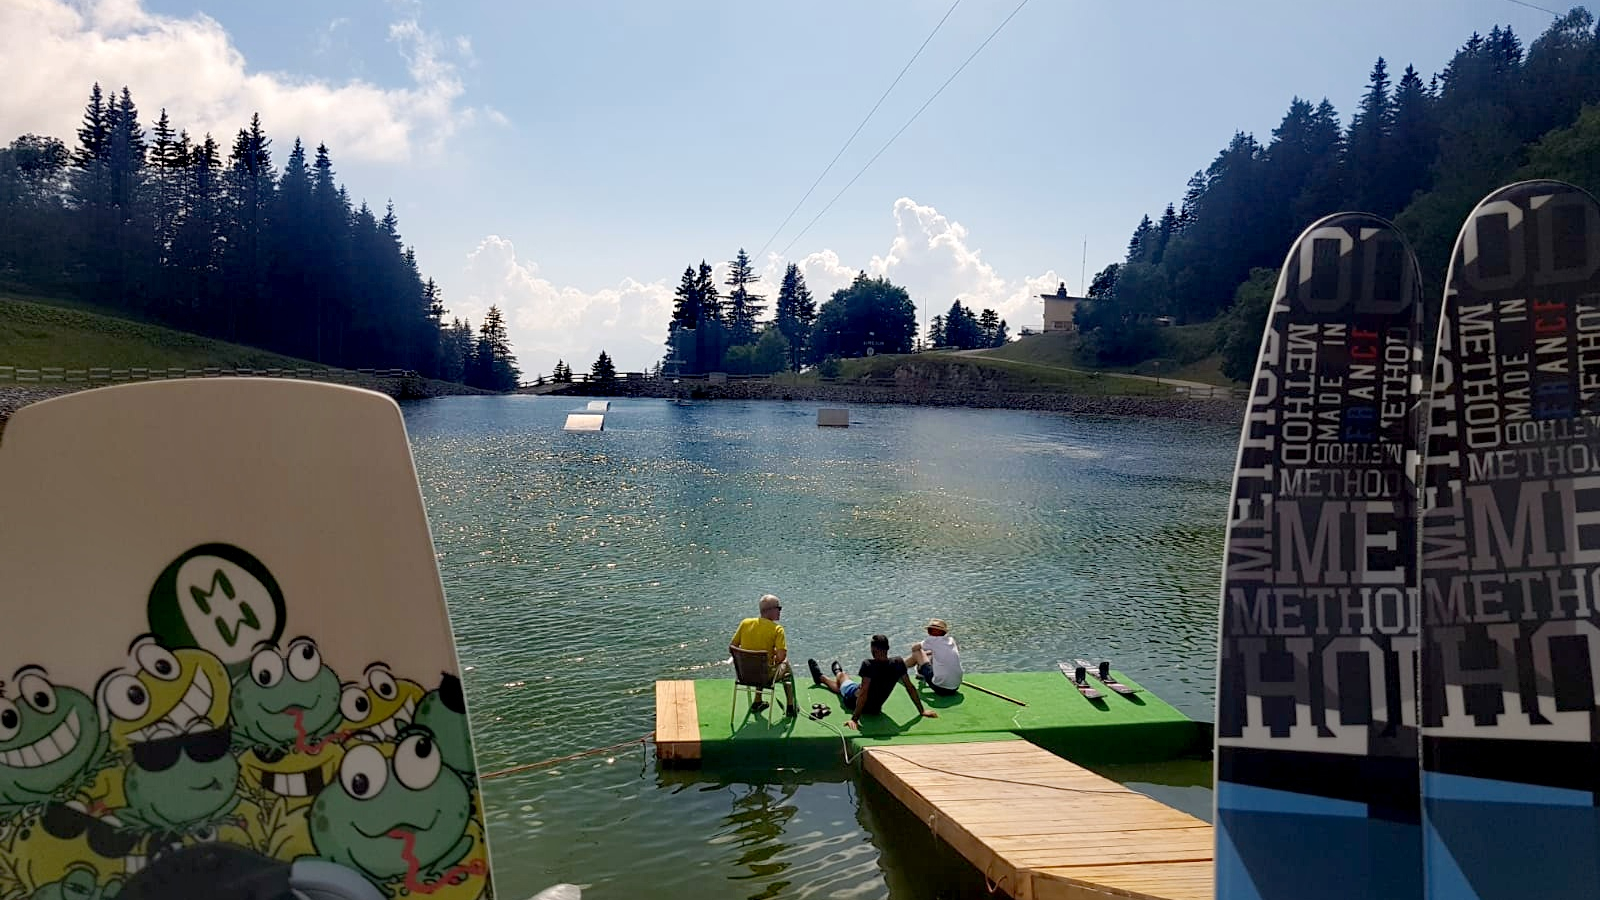 Picture of the Cable-ski activity